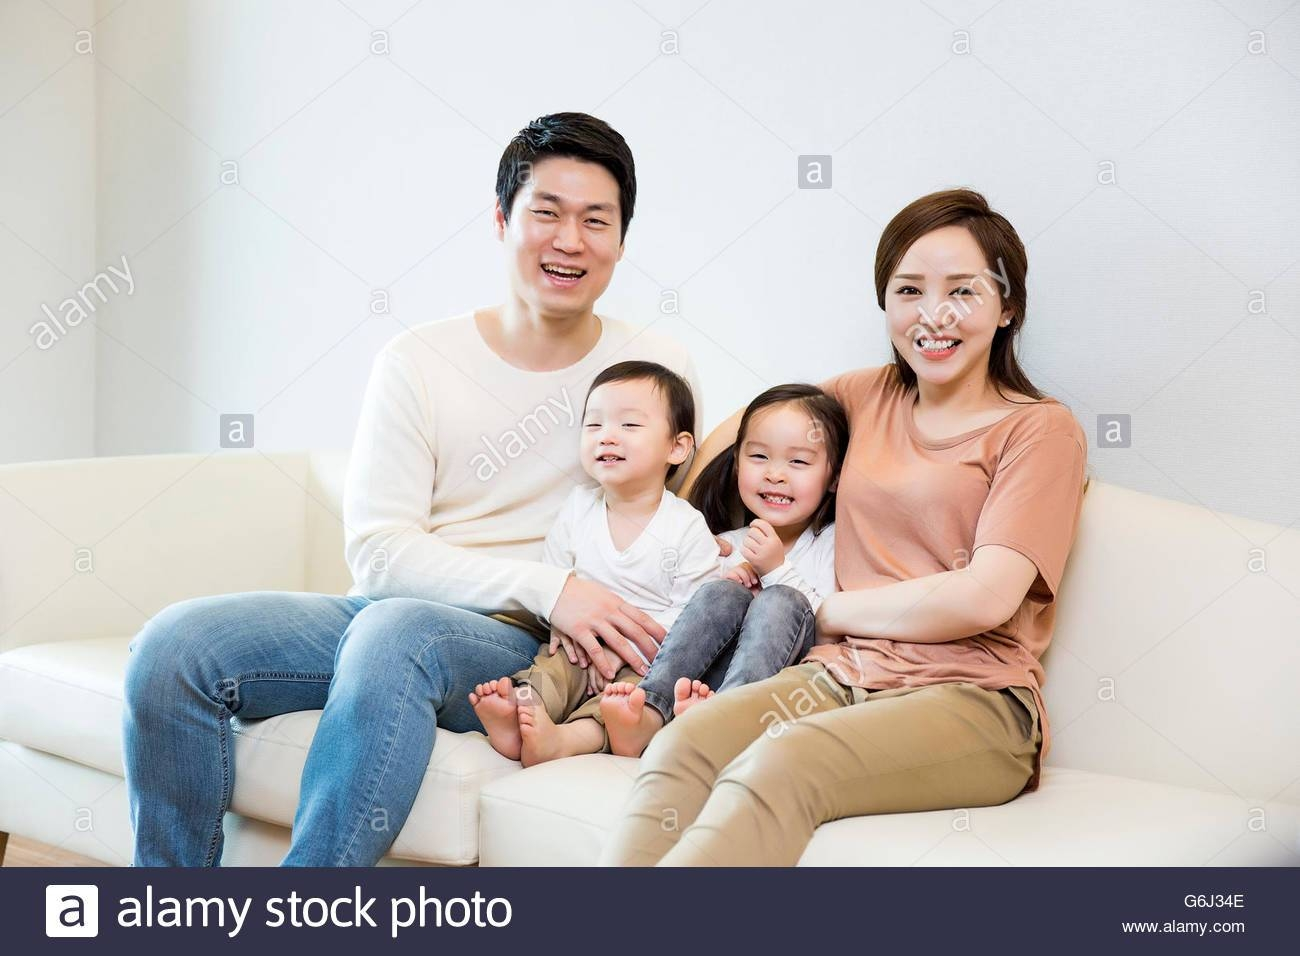 Happy Asian Family Smiling On The Sofa At Home Stock Photo intended for Family Sofa (Image 21 of 30)